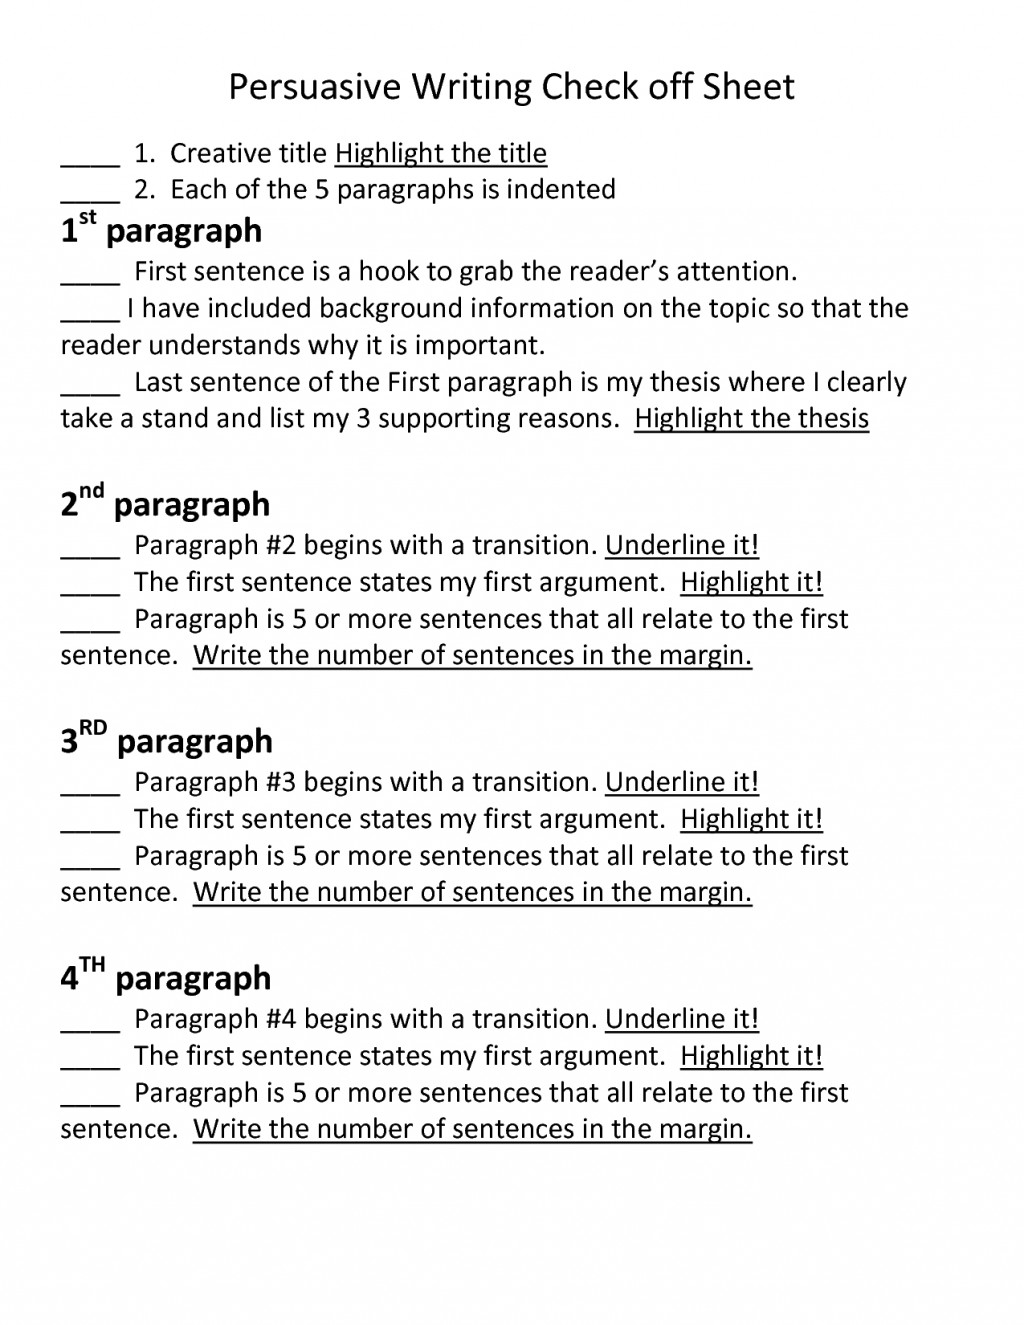 010 Paragraph Essay Template 4th Grade Writings And Essays How To Write Informative Examples 5th Google Search School Pertai About Yourself Body Opinion Argumentative Format Persuasive Exceptional 3 Graphic Organizer Large